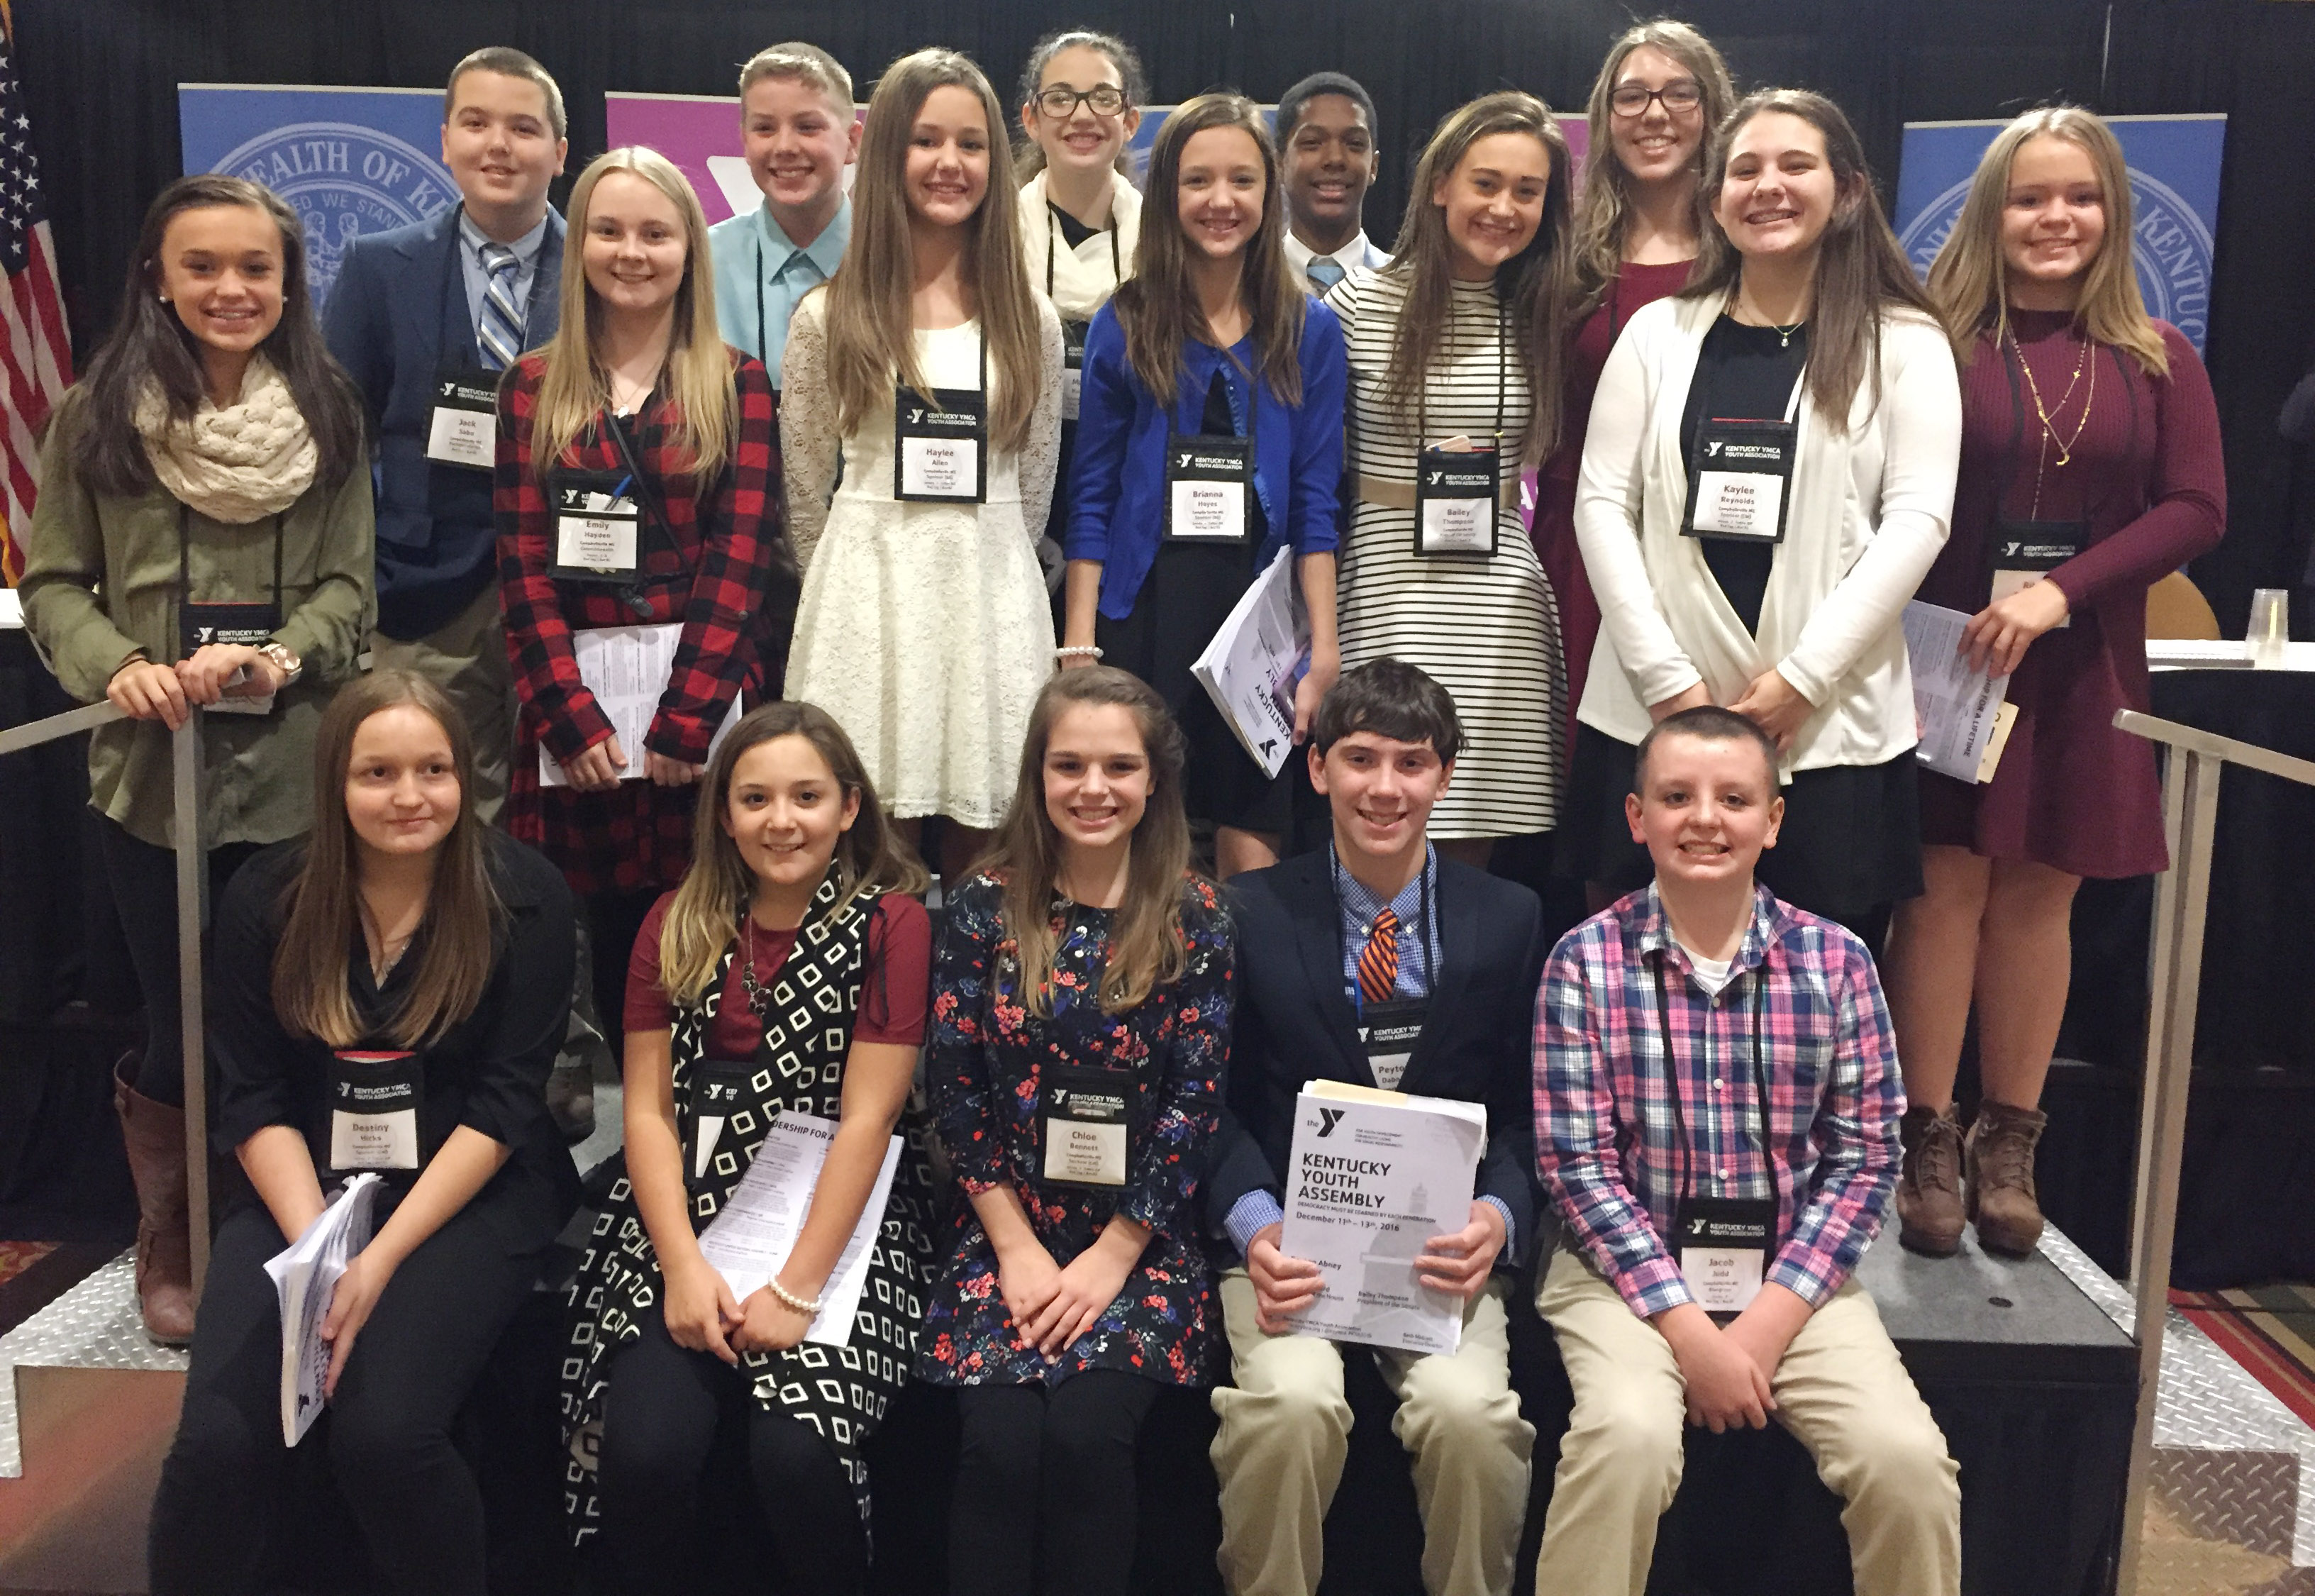 Students attending this year's KYA convention include, from left, front, eighth-grader Destiny Hicks, sixth-grader Briana Davis, eighth-grader Chloe Bennett, seventh-grader Peyton Dabney and sixth-grader Jacob Judd. Second row, seventh-grader Tayler Thompson, eighth-grader Emily Hayden, sixth-graders Haylee Allen and Bri Hayes, CHS freshman Bailey Thompson and seventh-graders Kaylee Reynolds and Riley Rainwater. Back, seventh-grader Jack Sabo, sixth-grader Wesley Reynolds, sixth-grader Mary Russell and eighth-graders Zaquan Cowan and Abi Wiedewitsch.